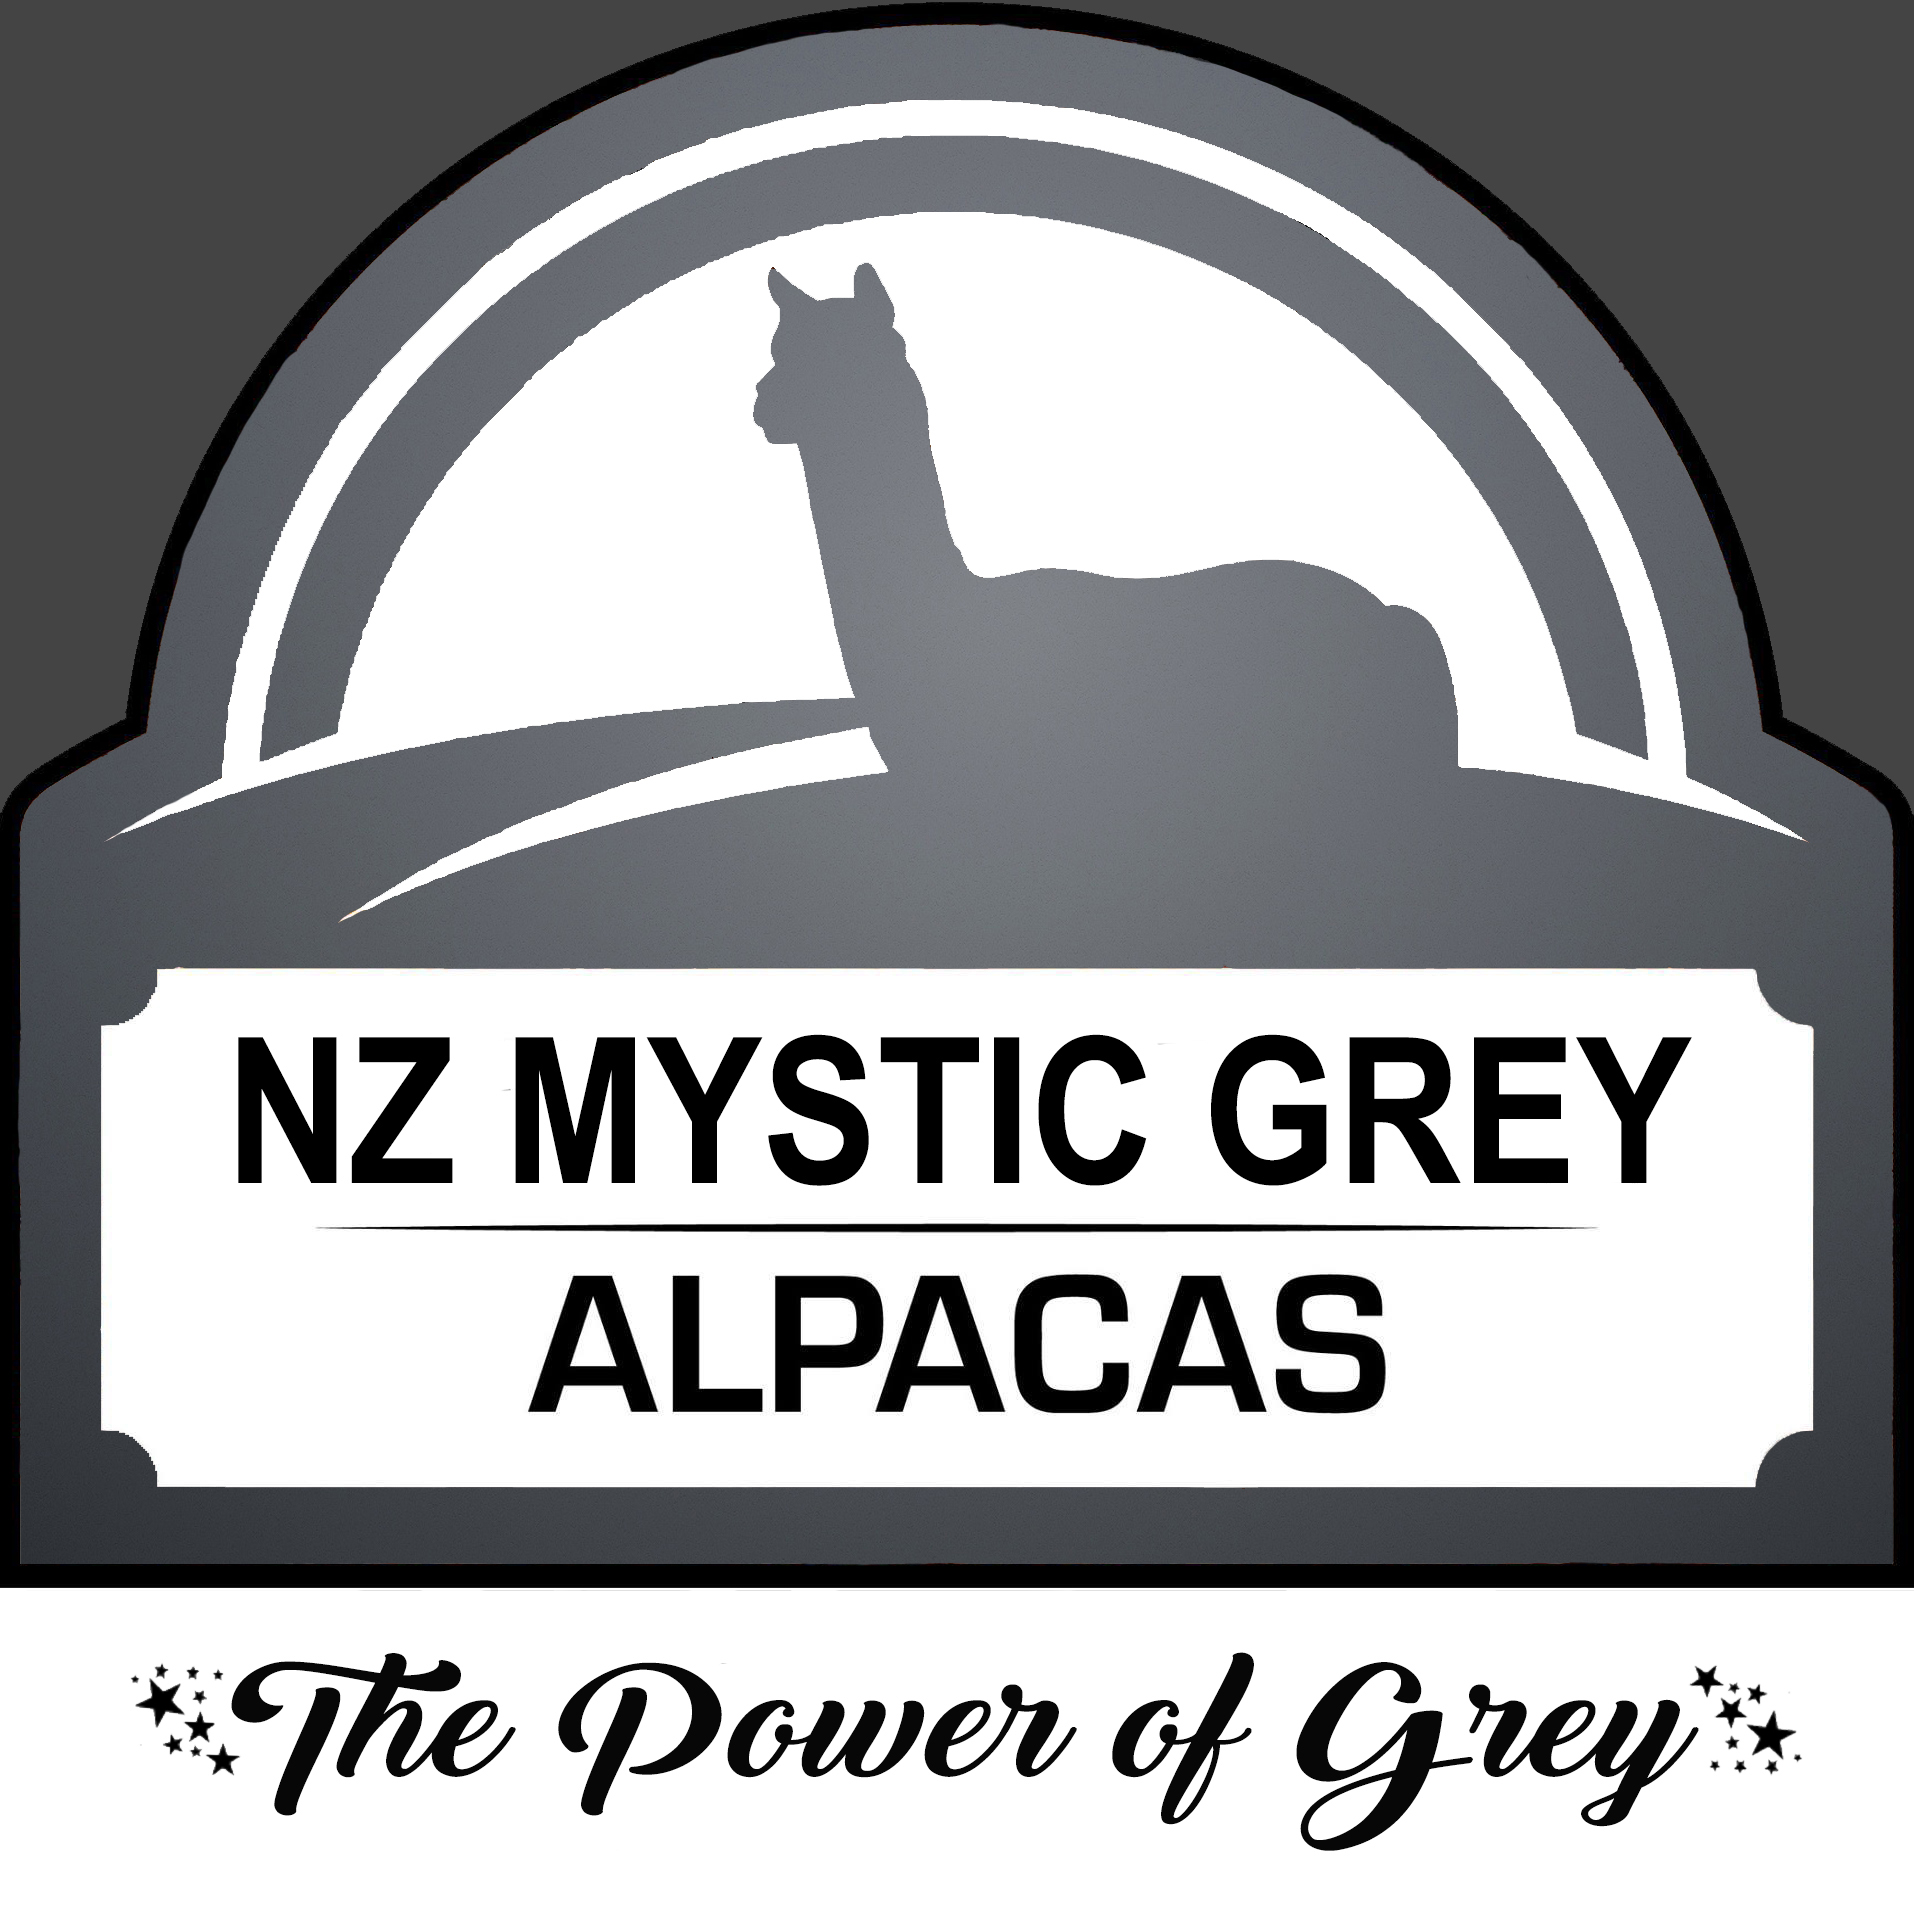 NZ MAJESTIC GREY LOGO